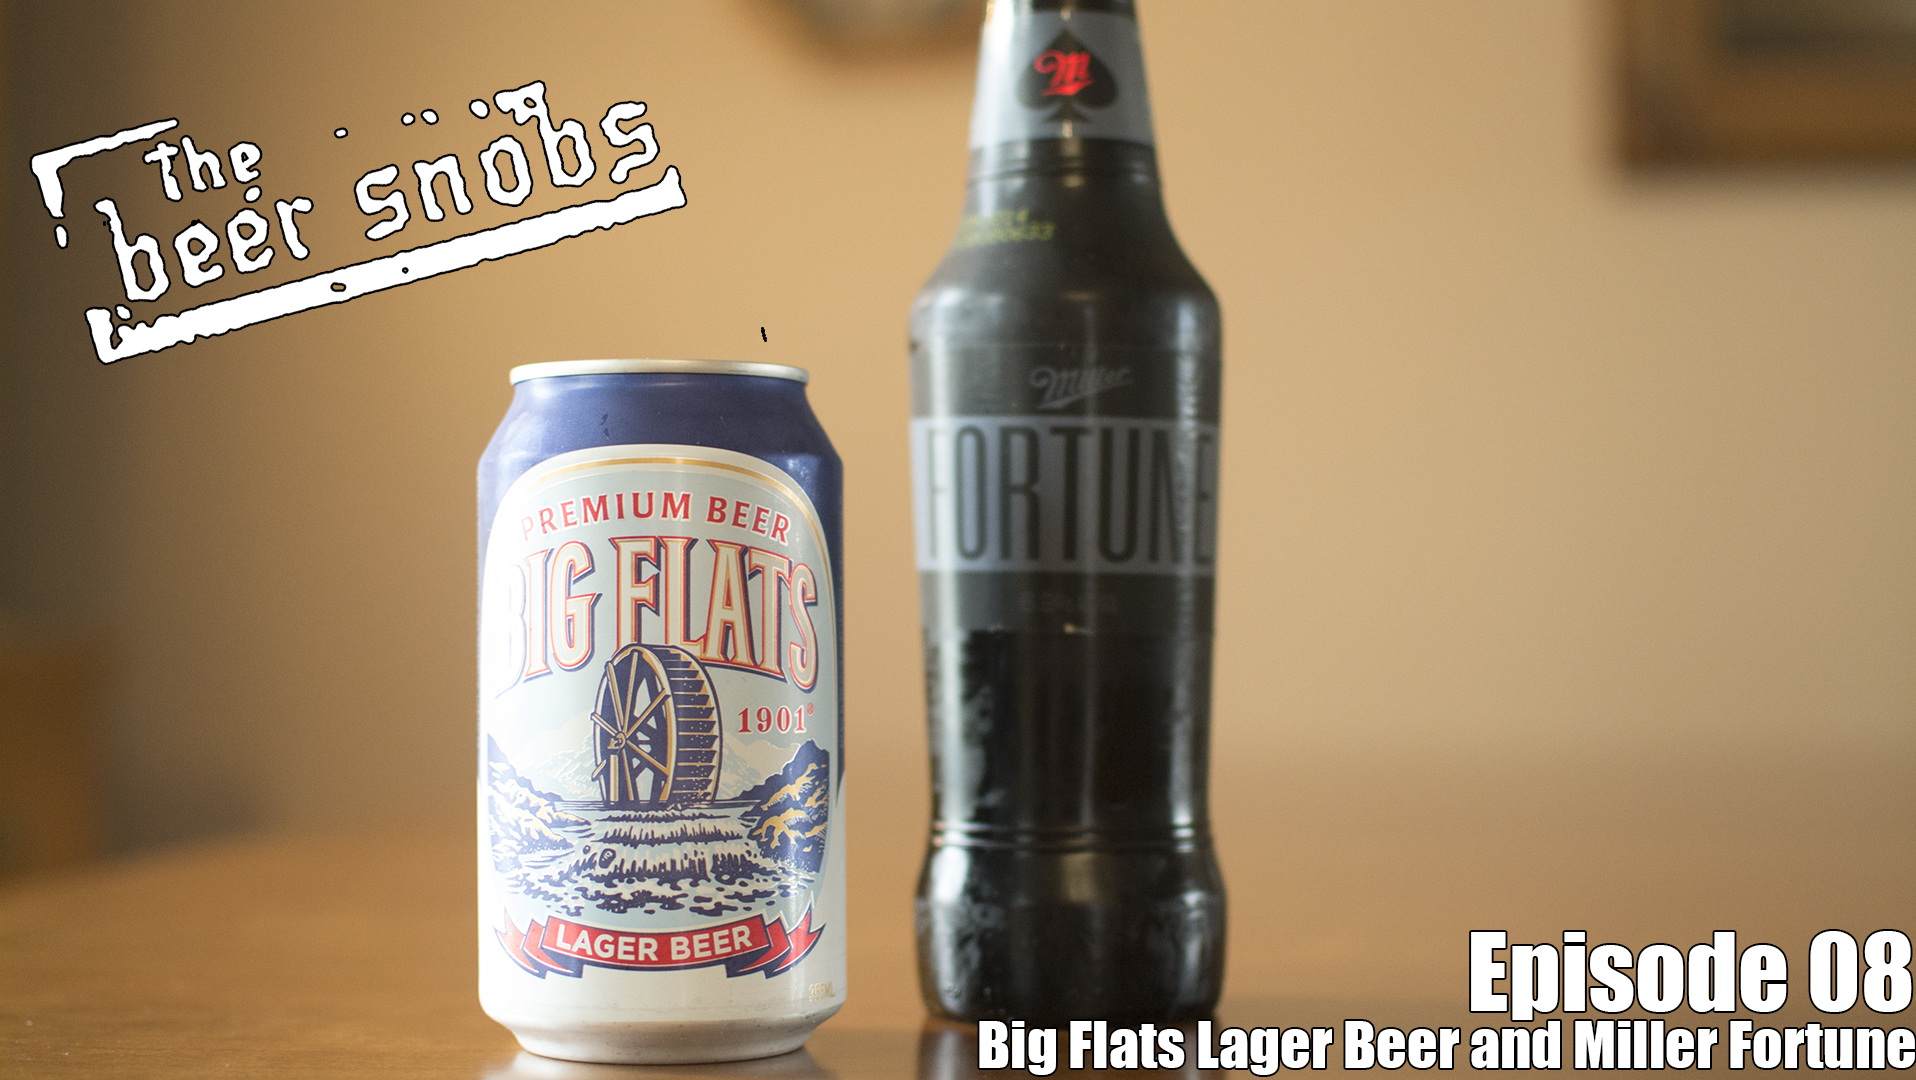 On this episode the snobs discuss the best beers they could find at concerts. They then blind reviewed Big Flats Lager Beer and Miller Fortune.